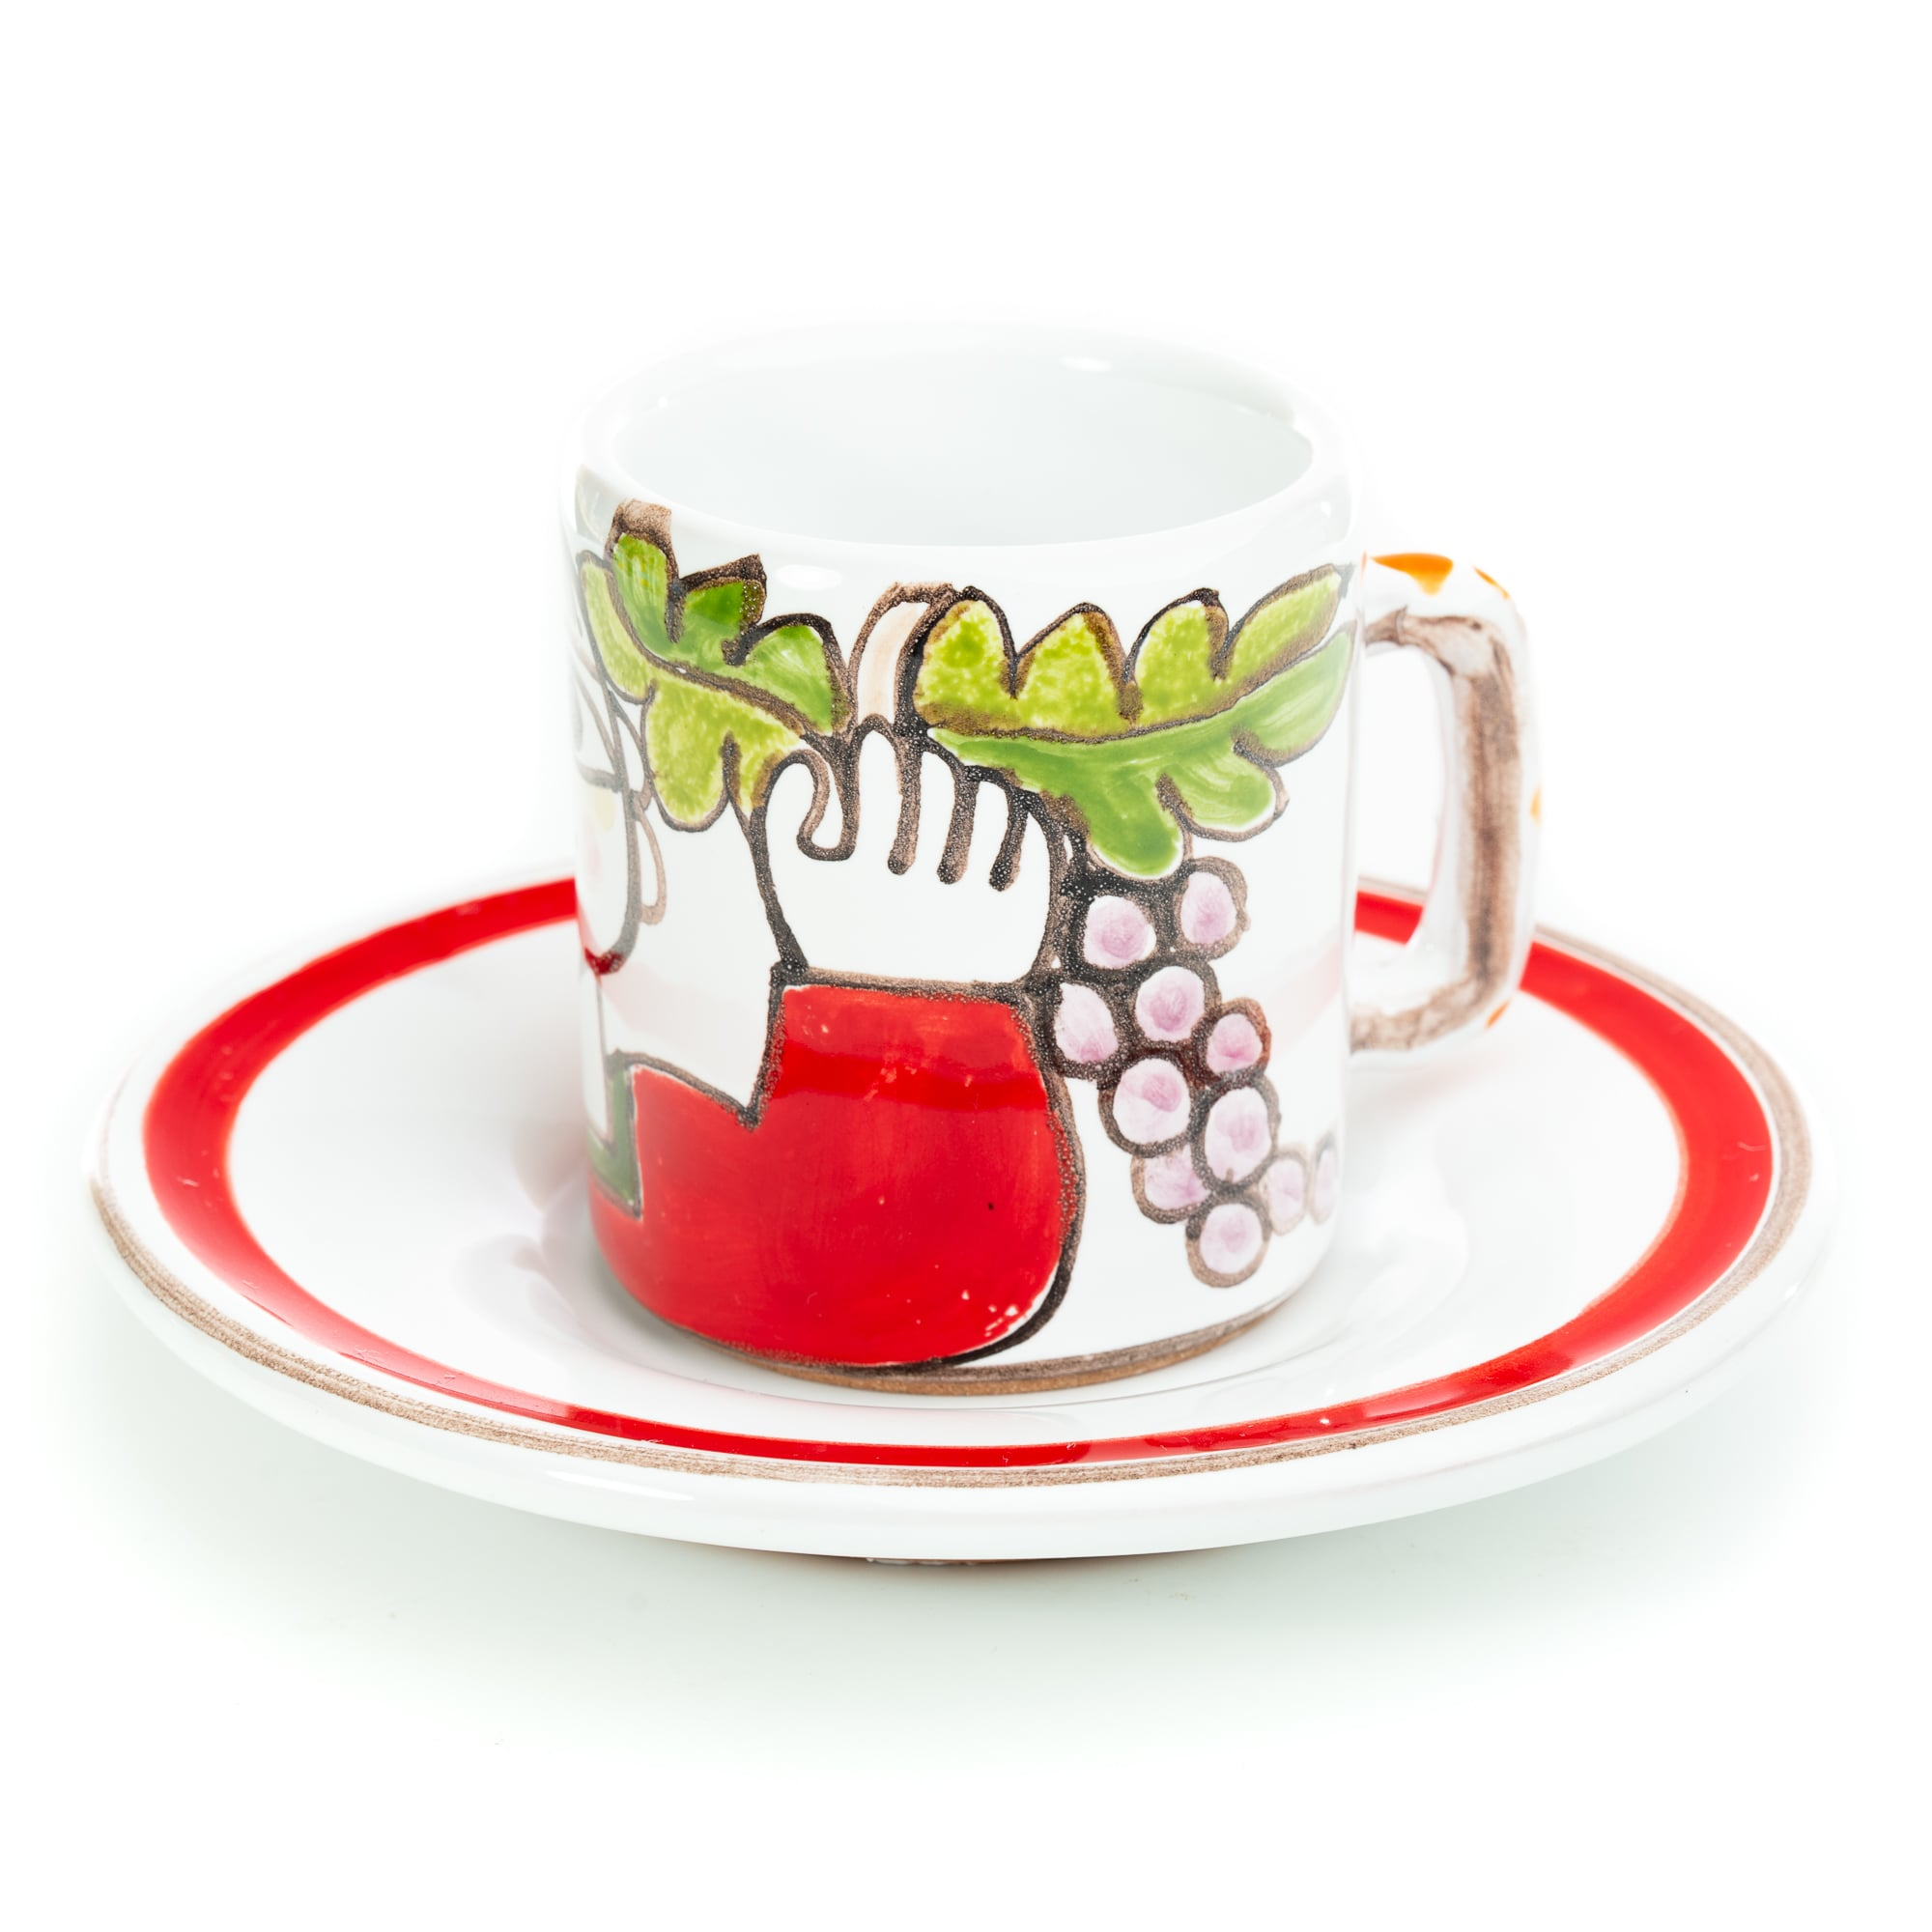 Folk Man with Grapes Espresso Cup and Saucer